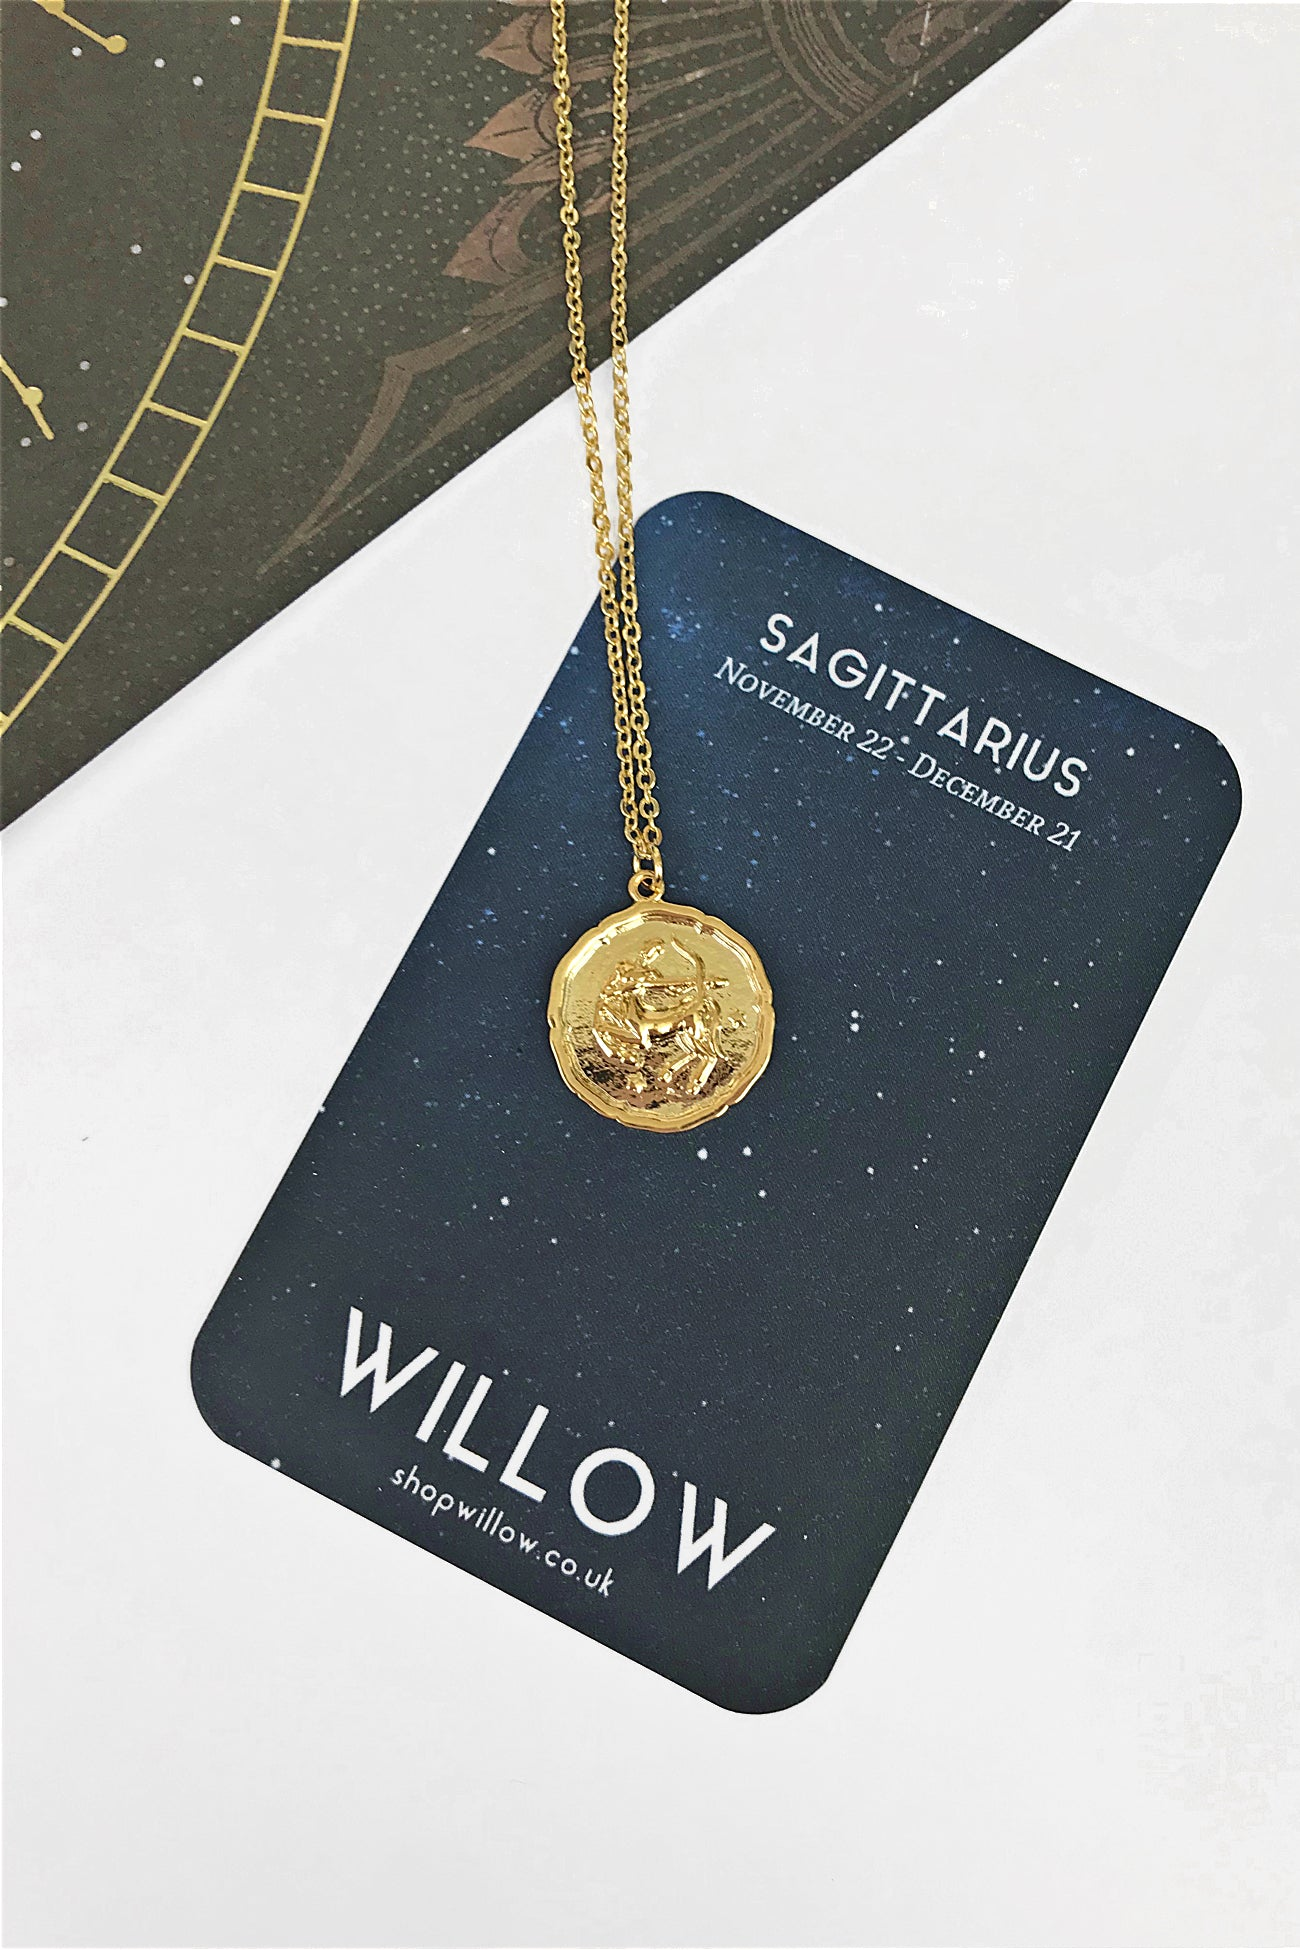 Sagittarius vintage medallion necklace